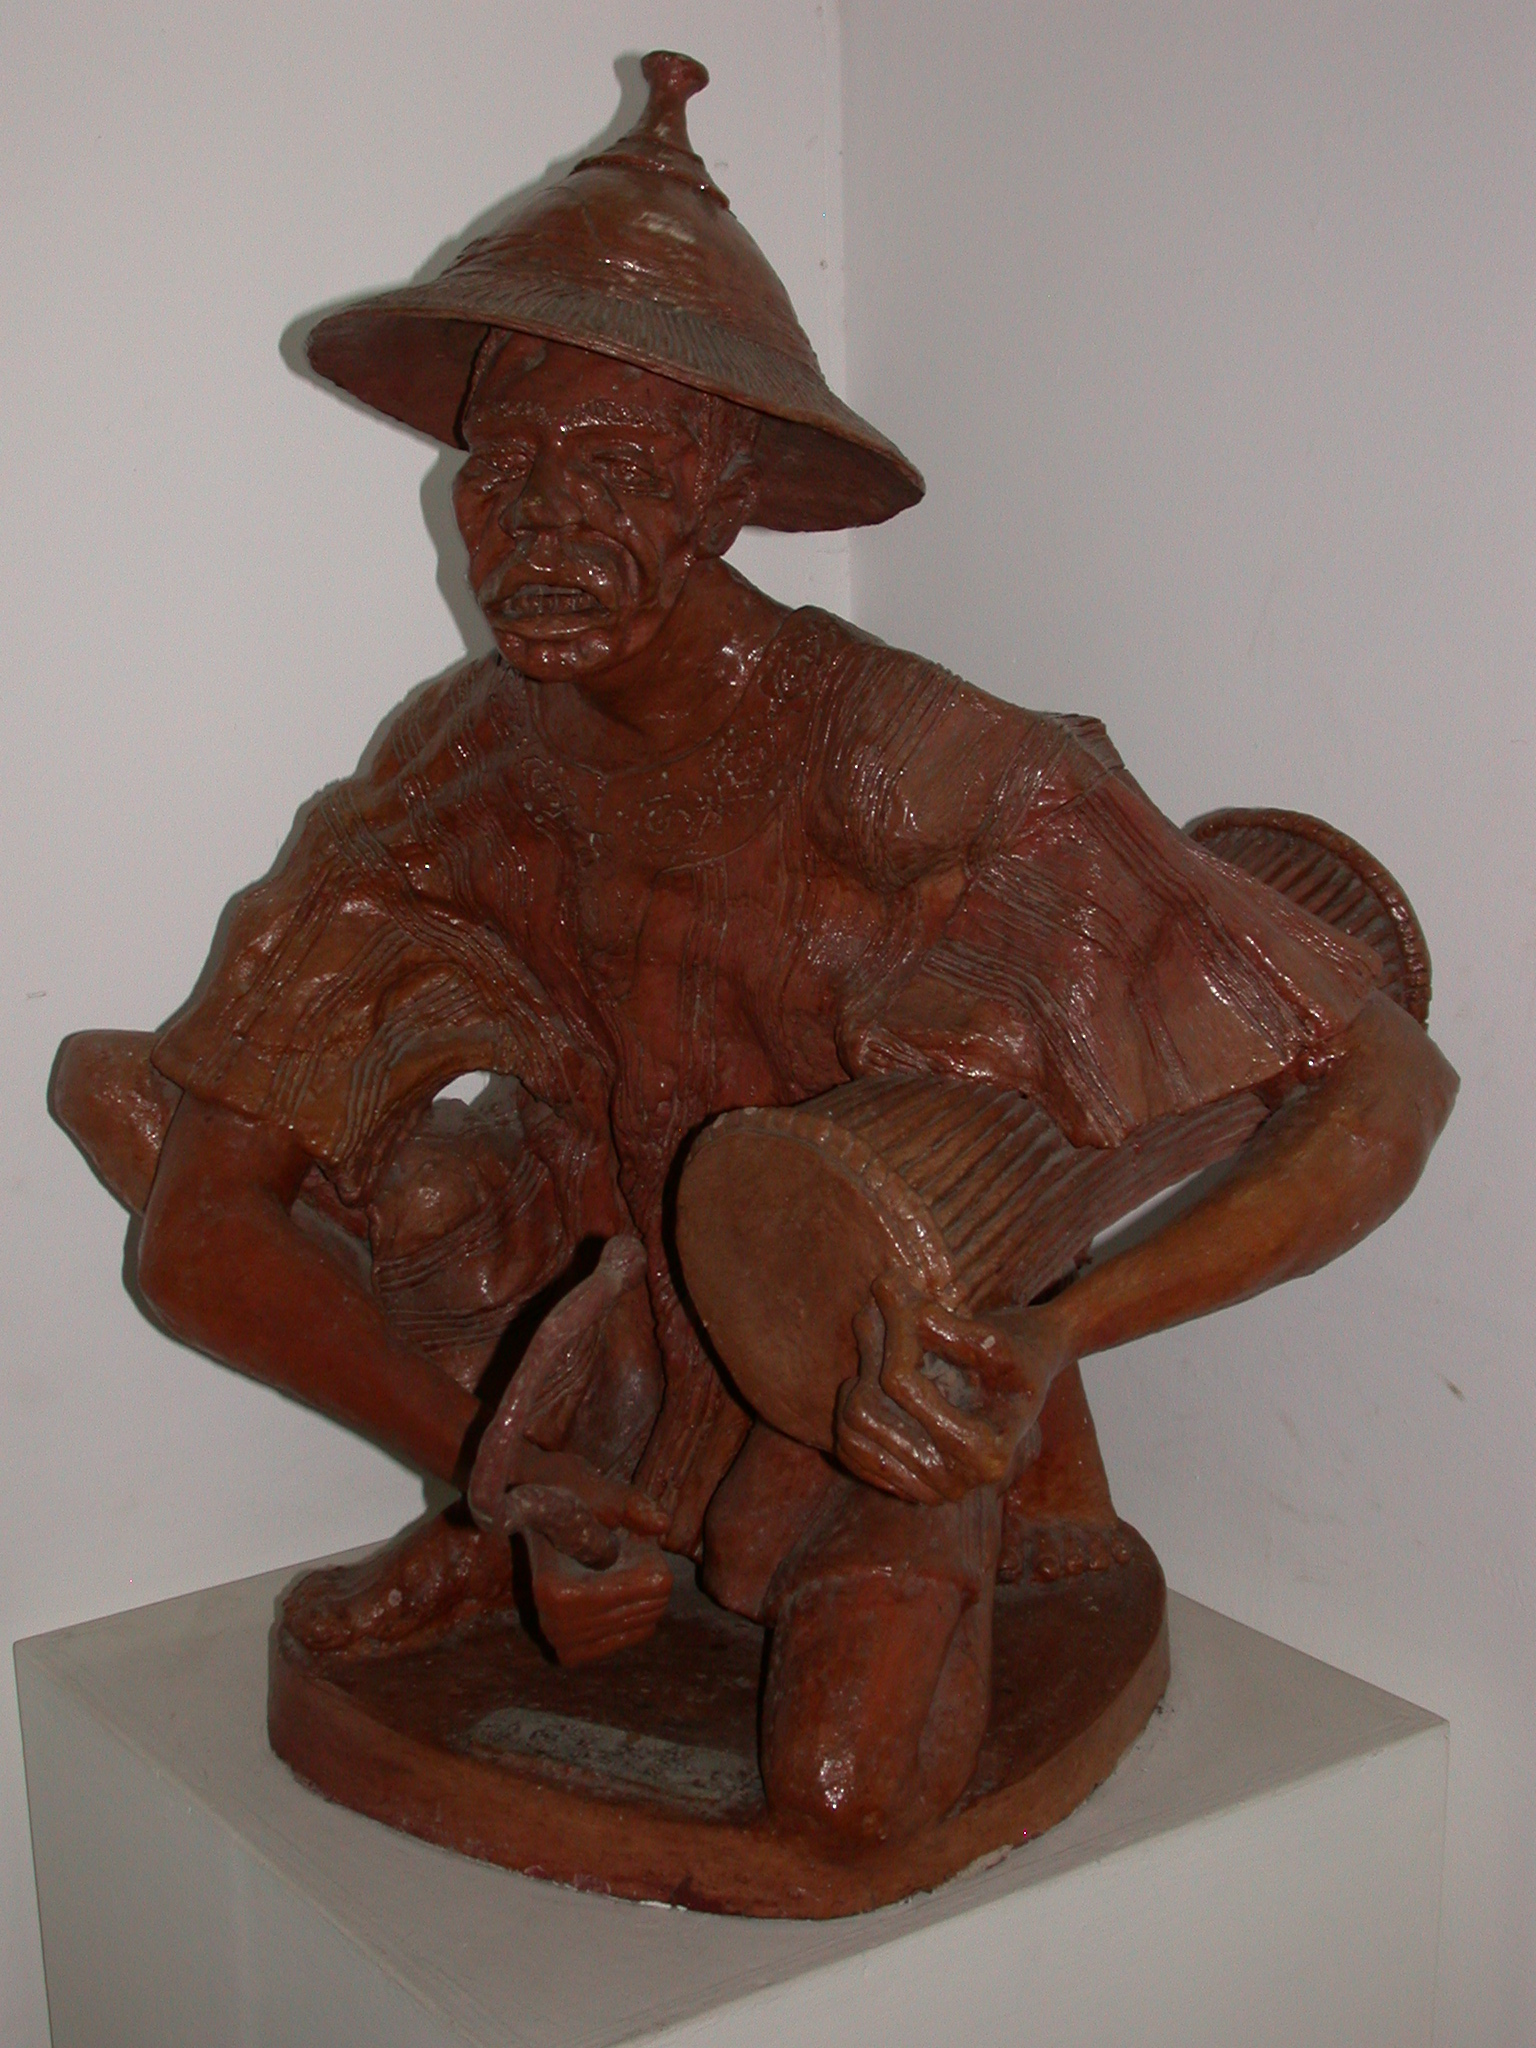 Wooden Sculpture of Man Playing Talking Drum, National Museum, Accra, Ghana